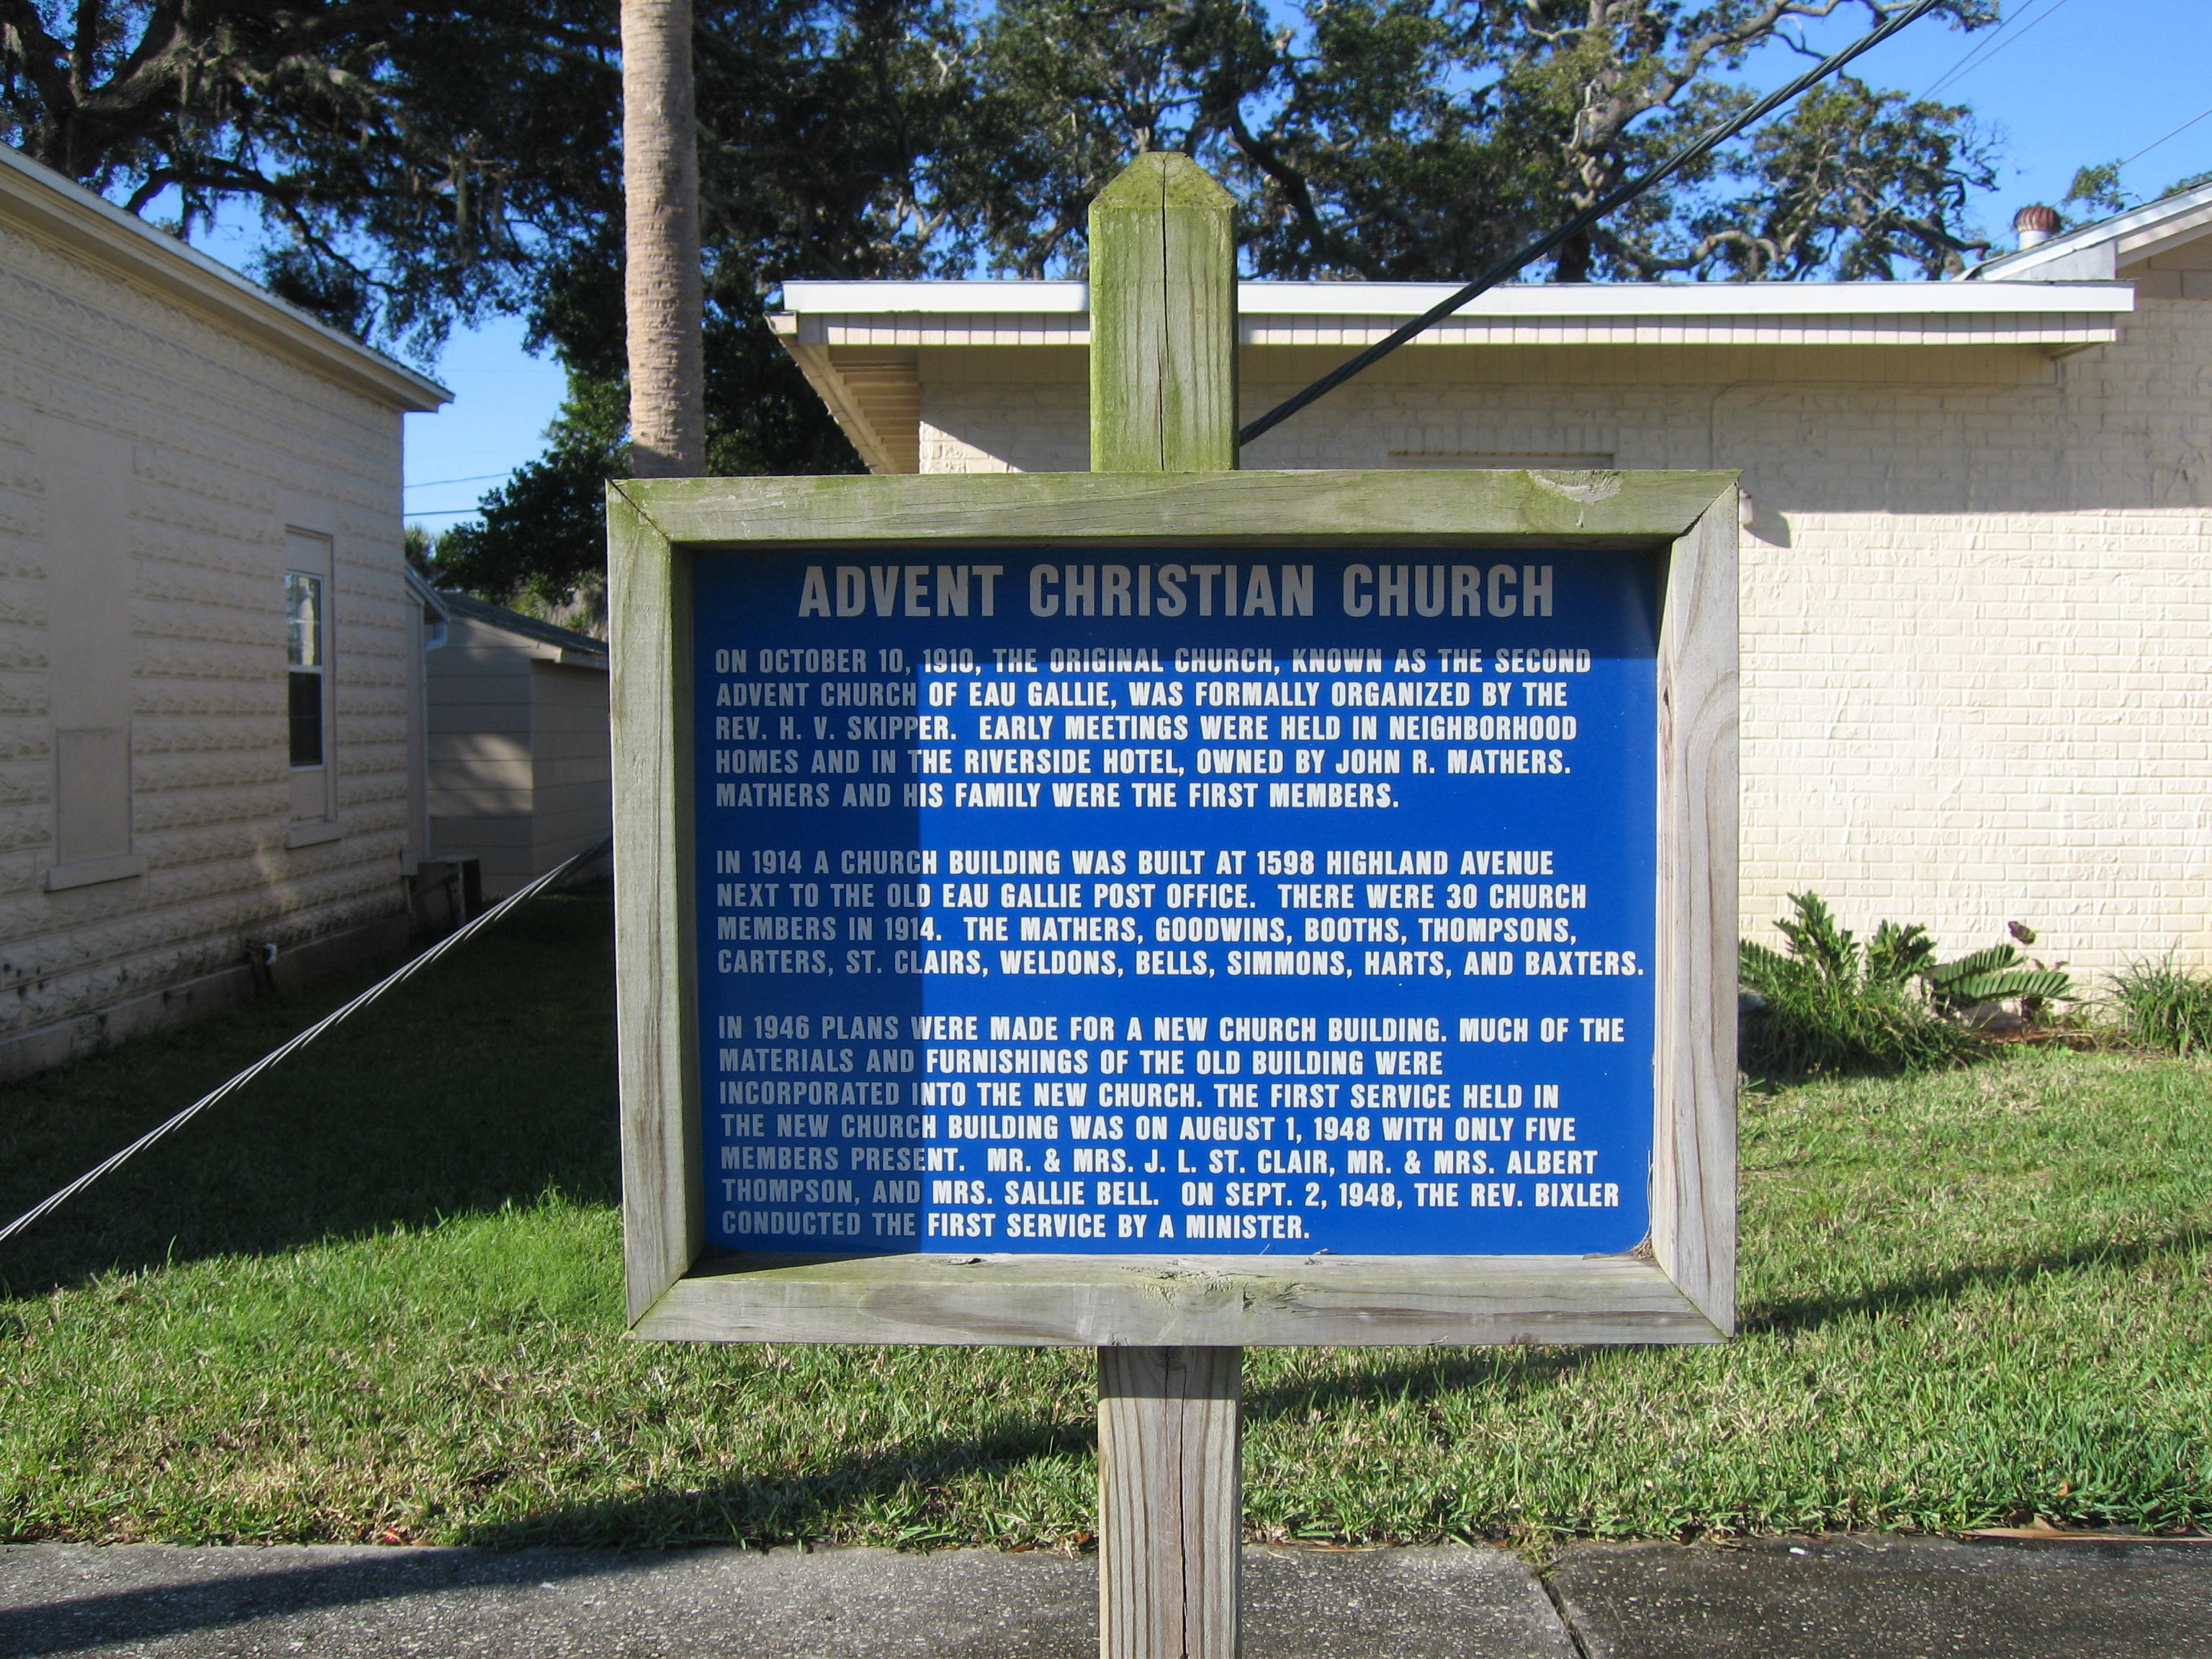 File:Advent Christian Church (Eau Gallie, Florida) Historical ...